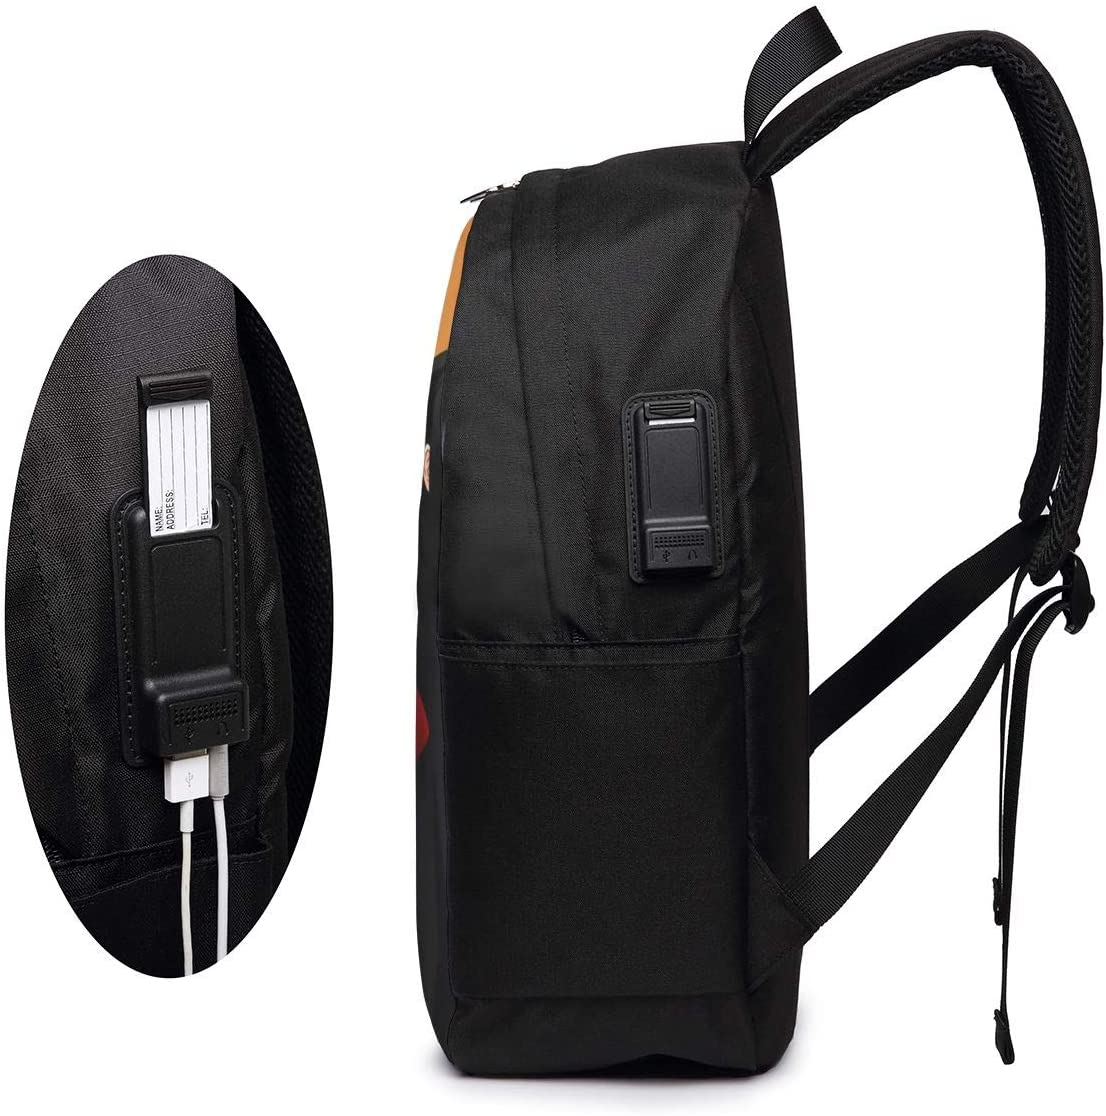 17 Inches Heavy Backpack with USB Charging//Headphone//Name Tag//Port,Sword Art Online Couples Wallpaper Large Capacity Durable Stretch Adustable Should Bag Schoolbag for Adults//Kids